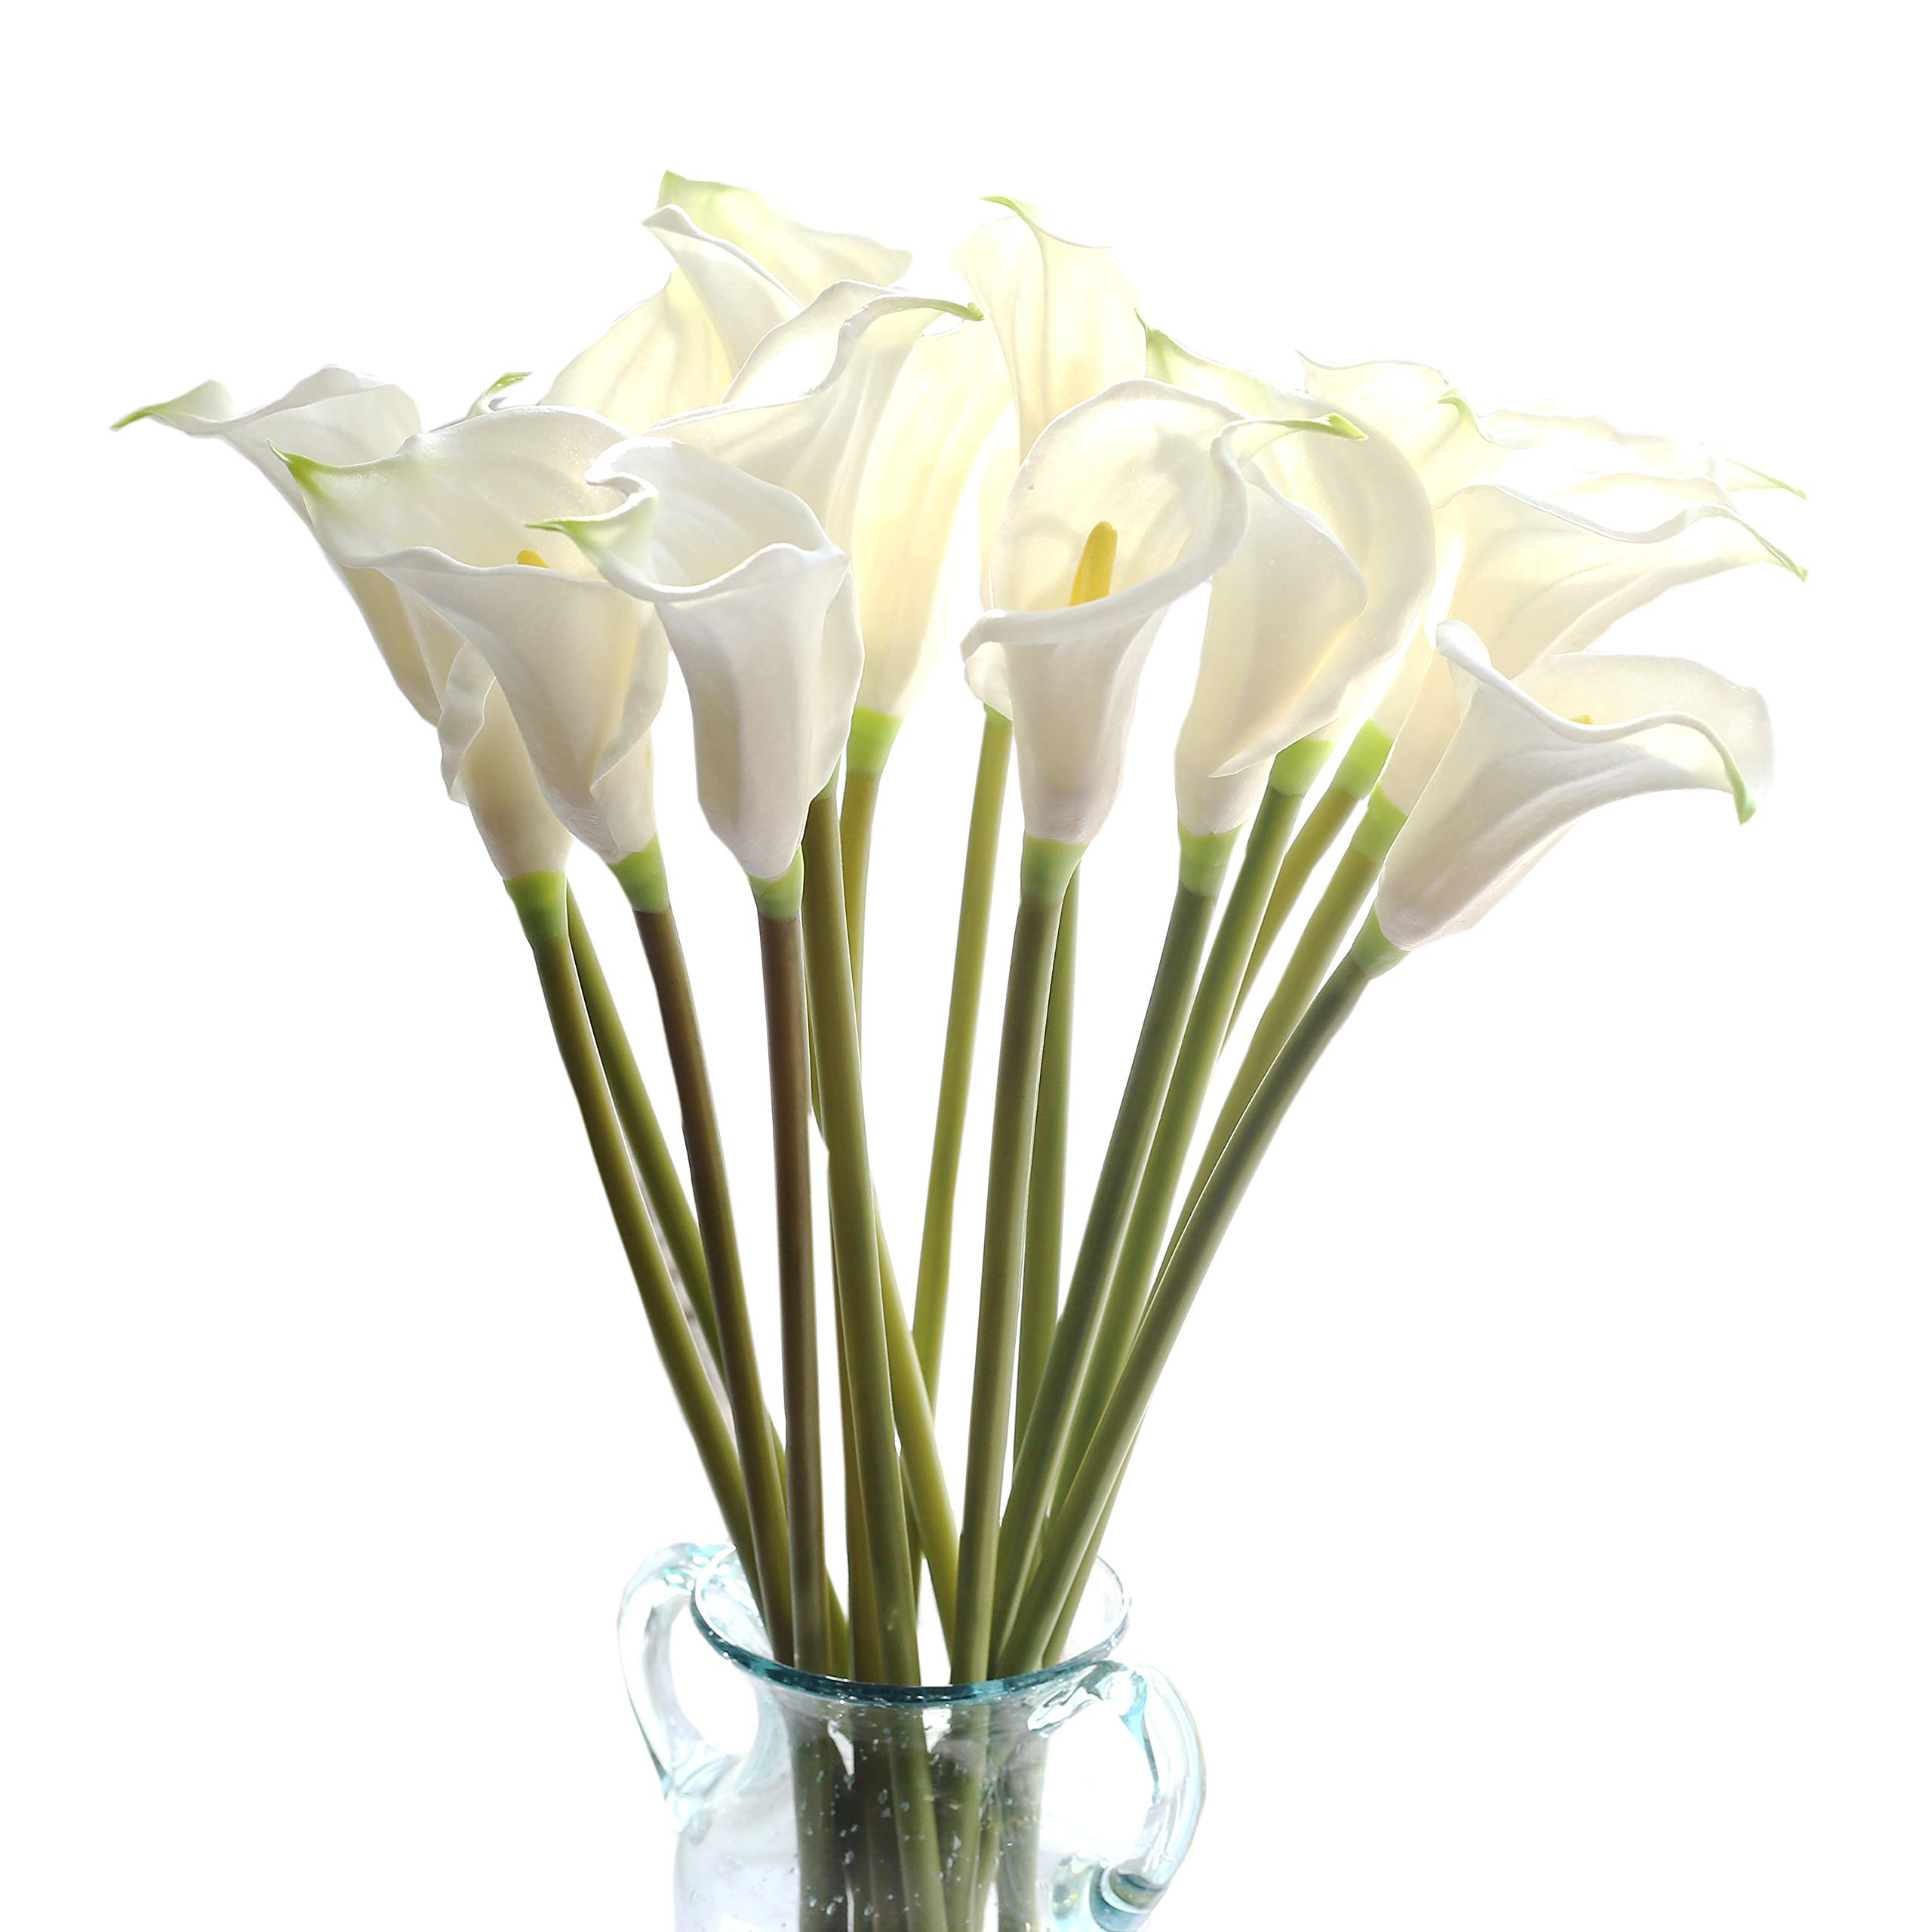 cn-Knight Artificial Flower 10pcs 26'' Long Stem Calla Lily Faux PU Flower Fake Arum Lily for Wedding Bridal Bouquet Bridesmaid Home Décor Office Baby Shower Centerpiece Reception(White) by cn-Knight